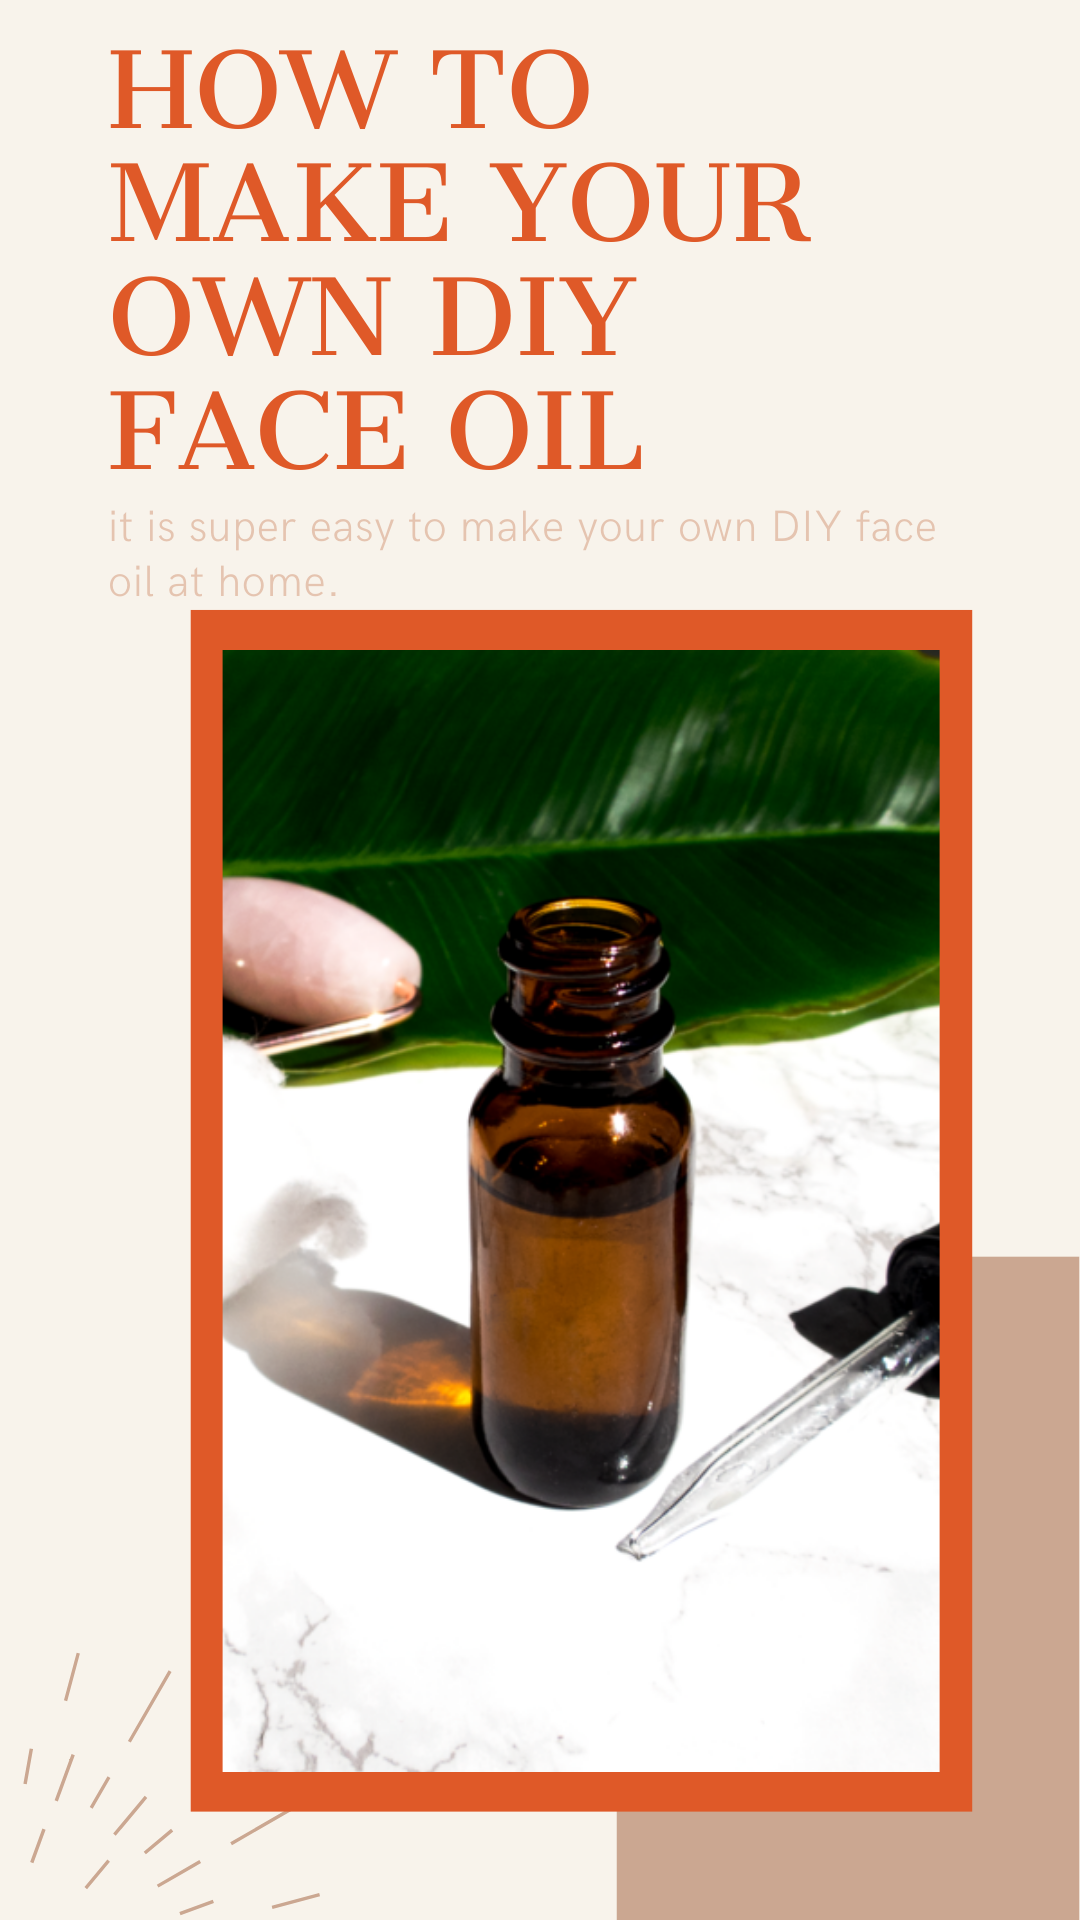 How to Make Your Own DIY Face Oil